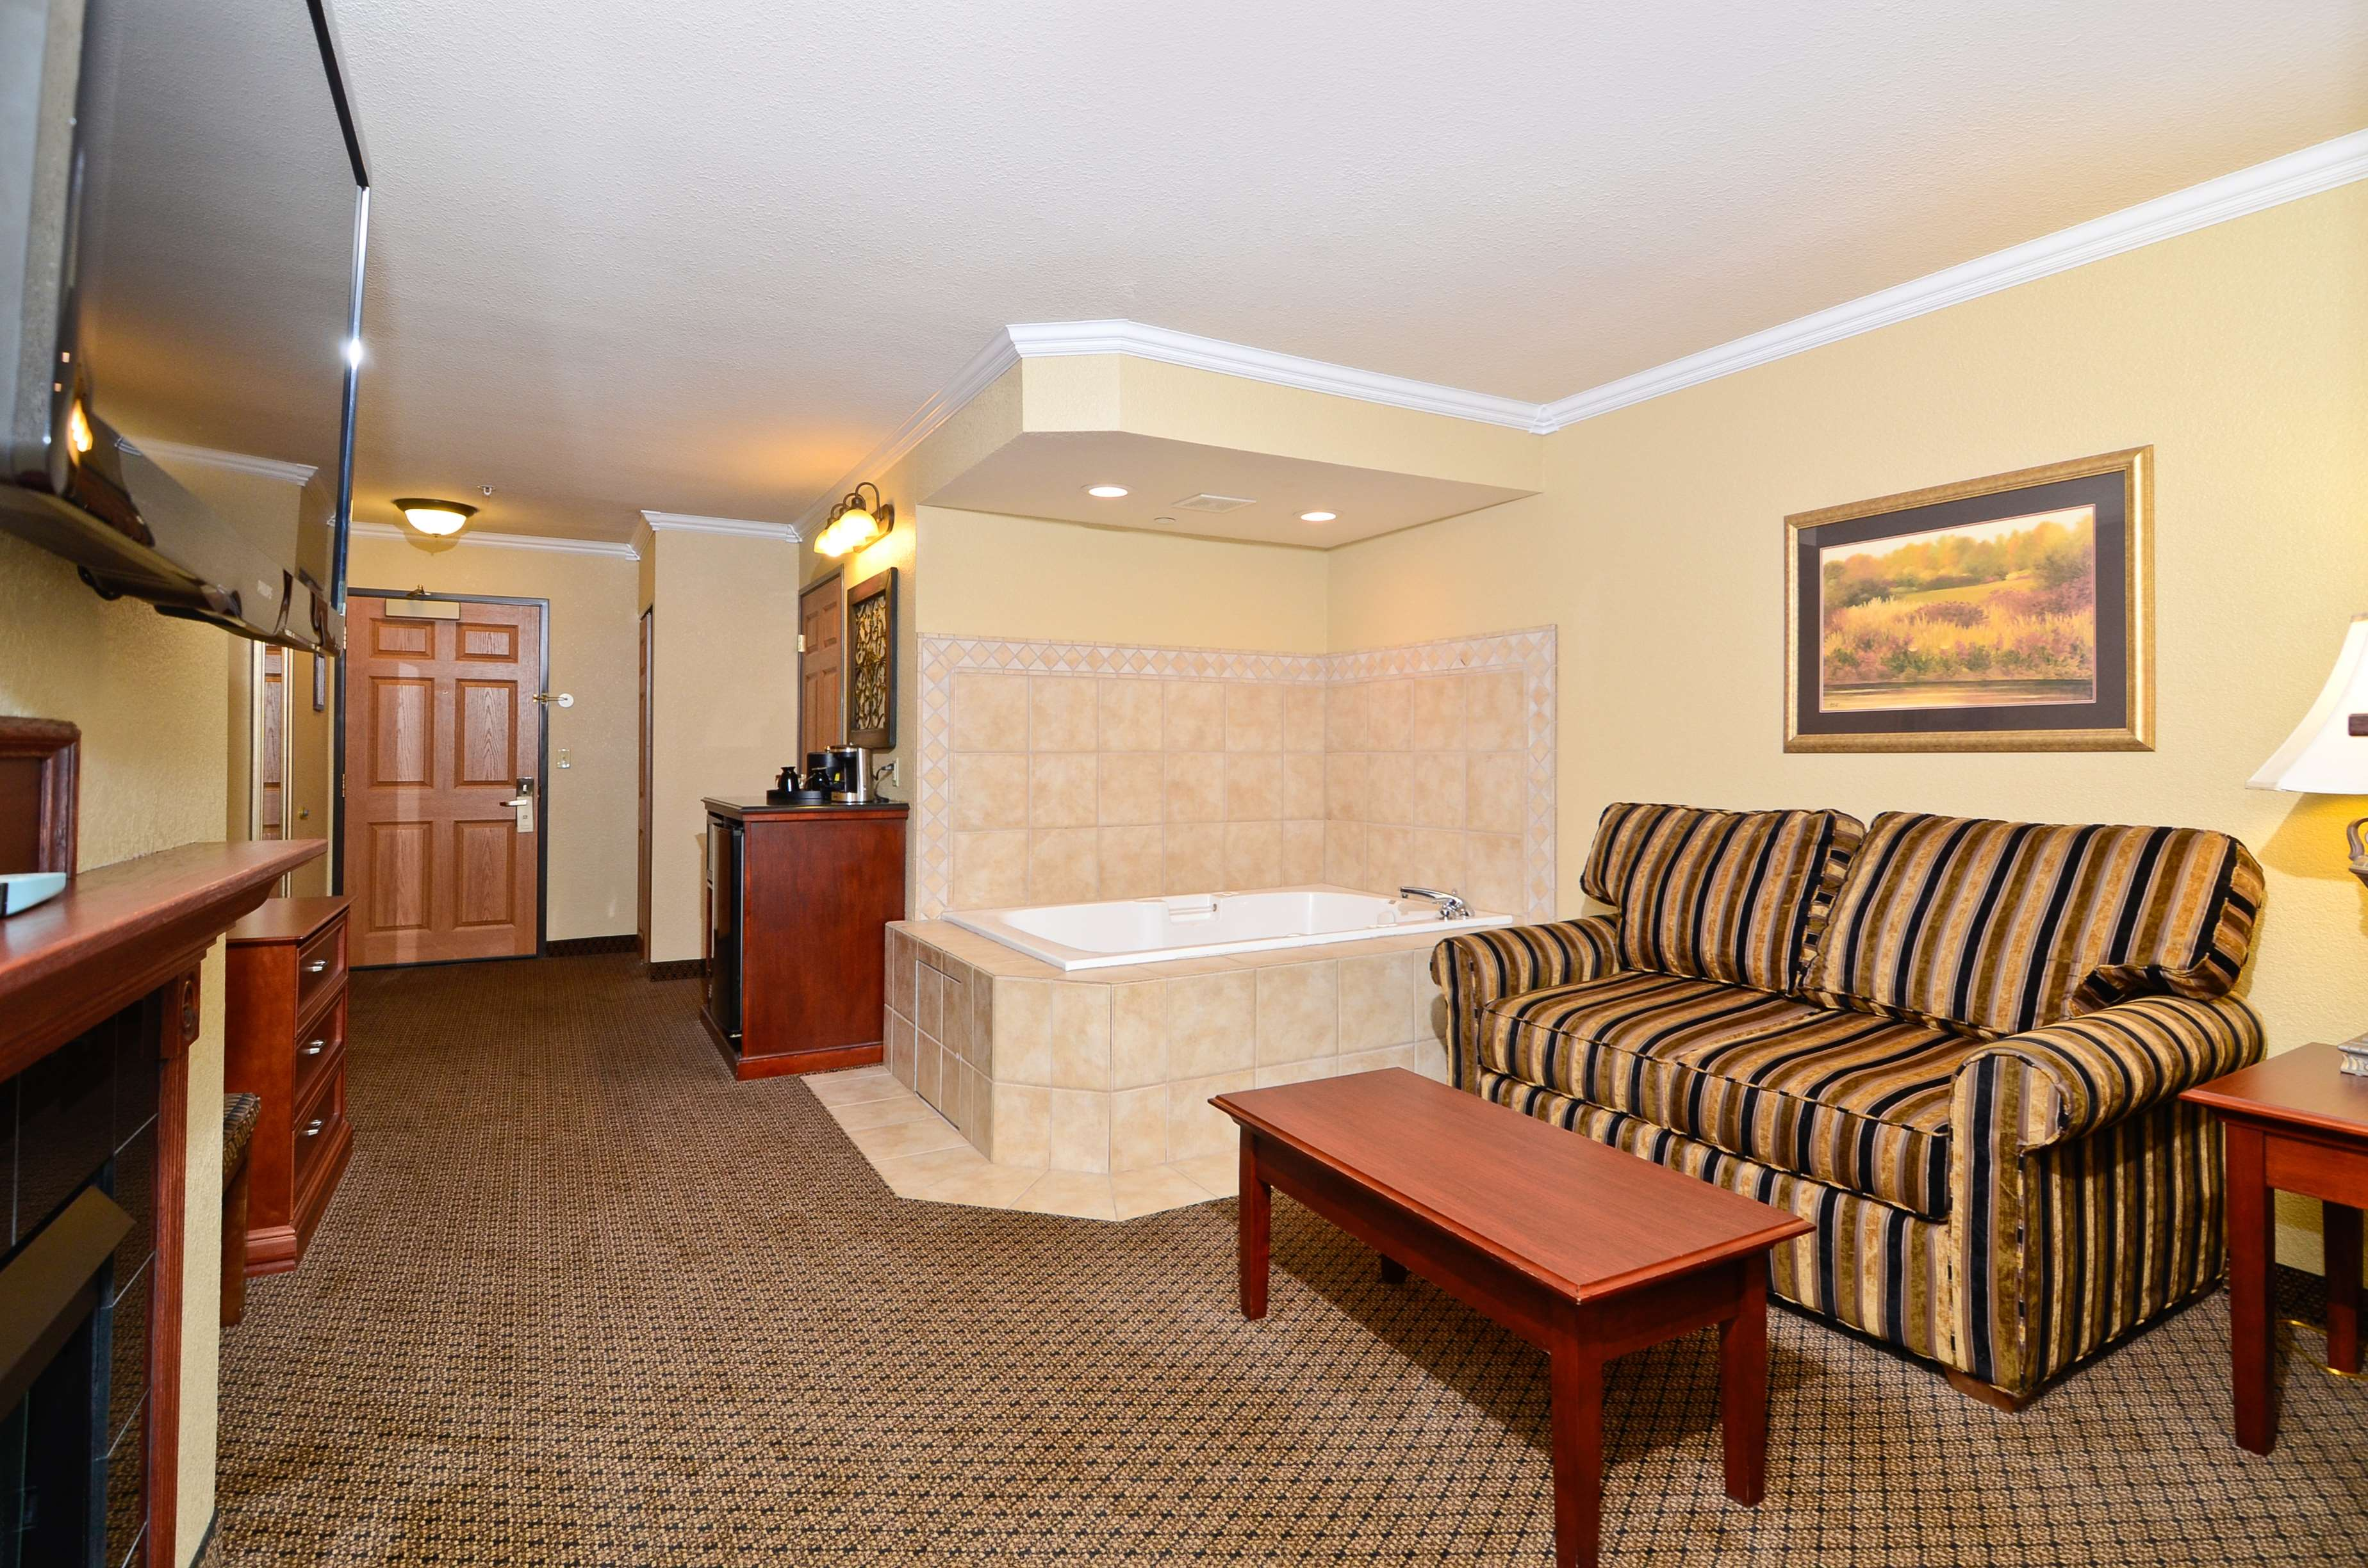 Hotels And Motels In Neenah Wi